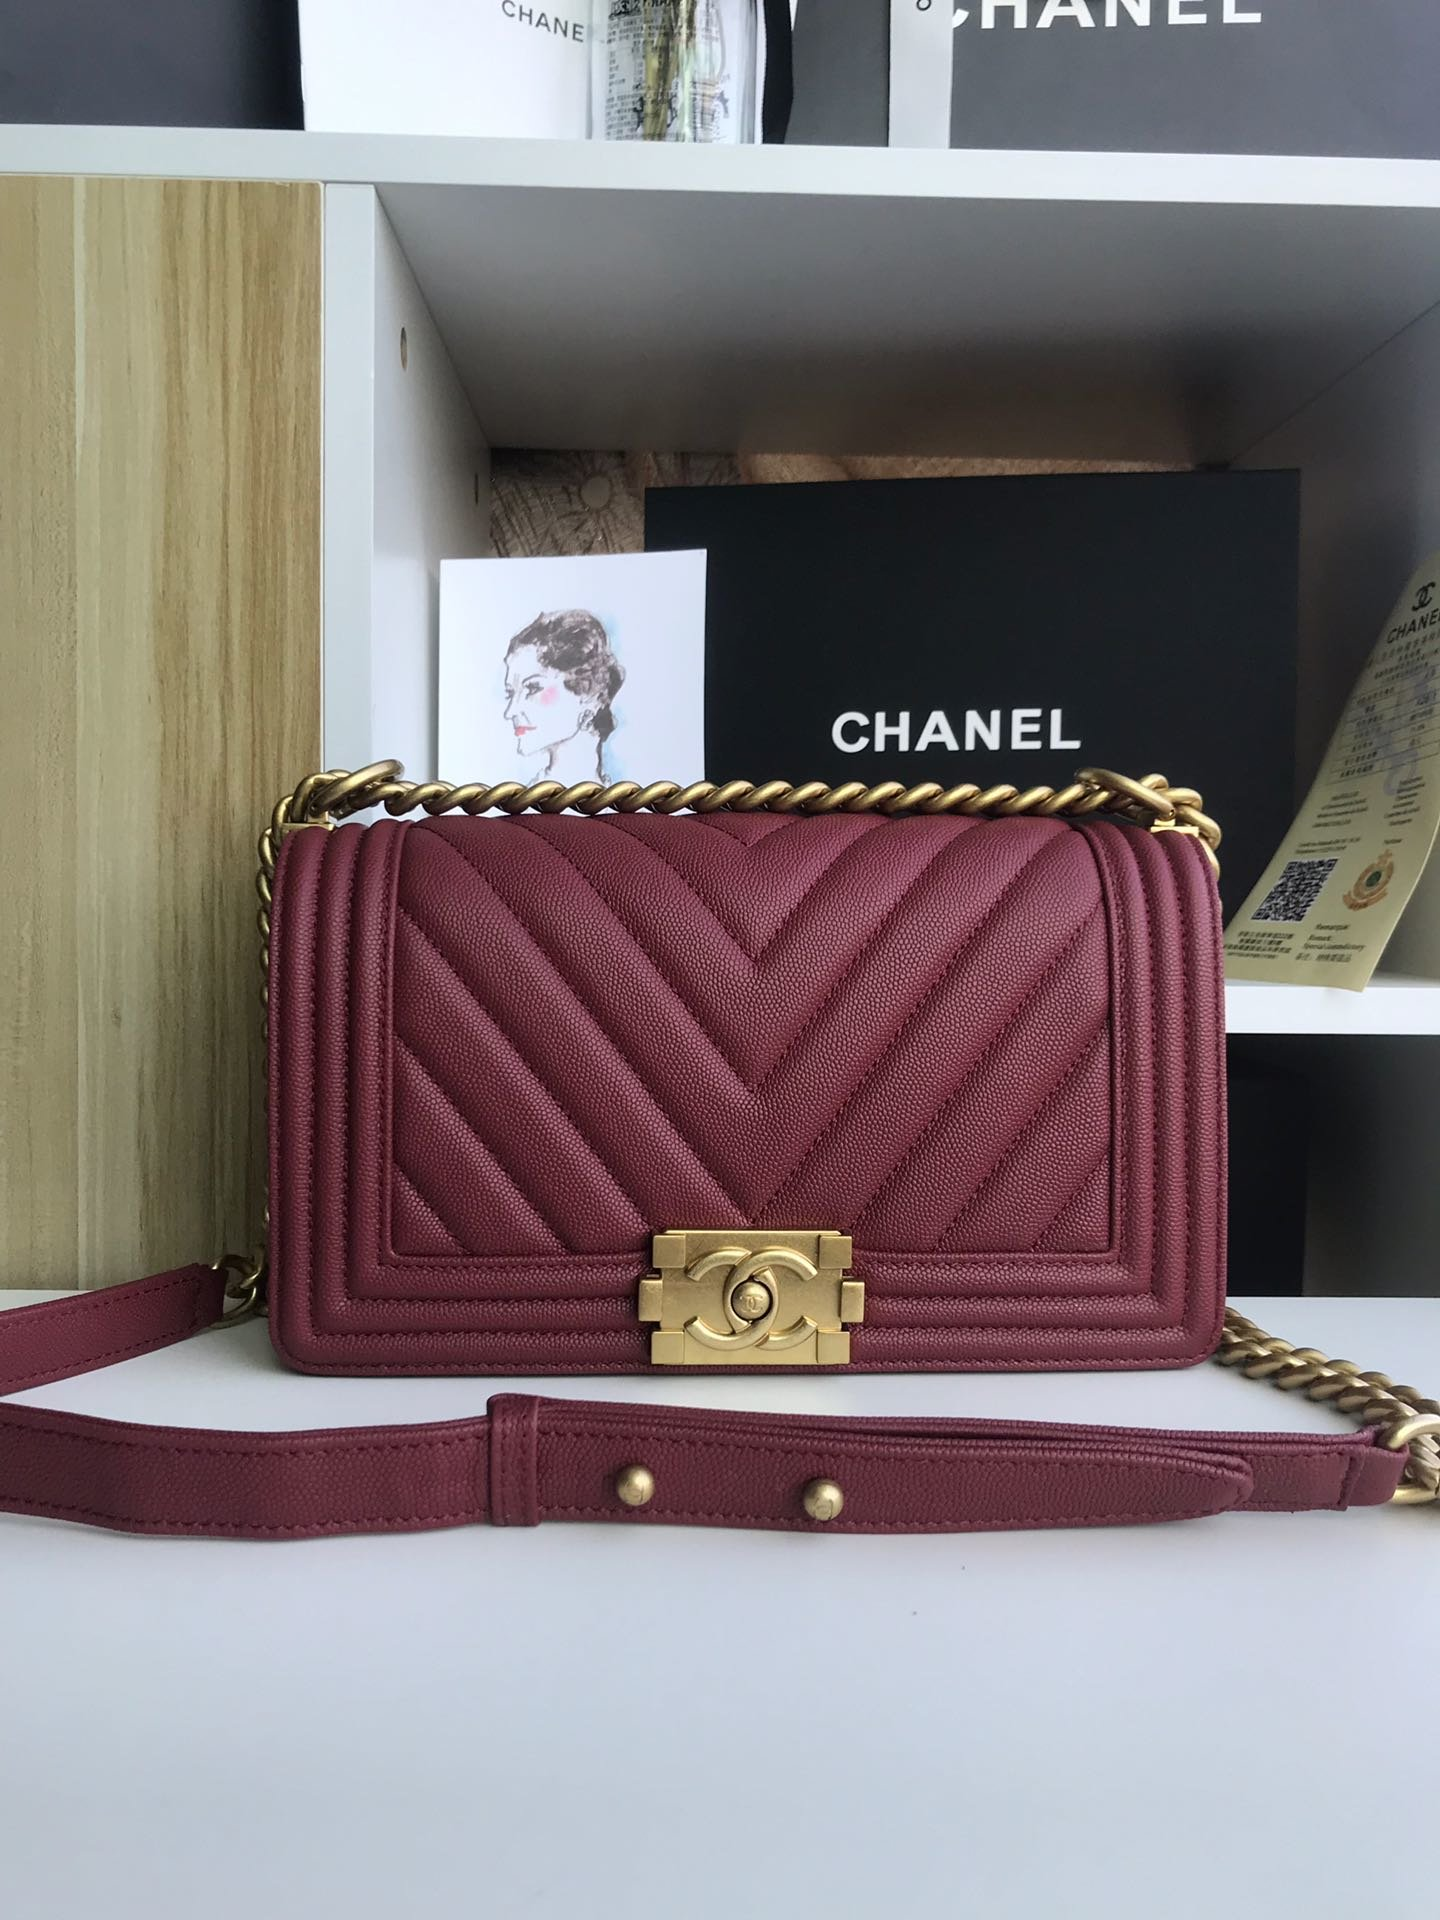 Replica 25cm V Boy Chanel Handbag Dark Red Grained Calfskin Gold Tone Metal